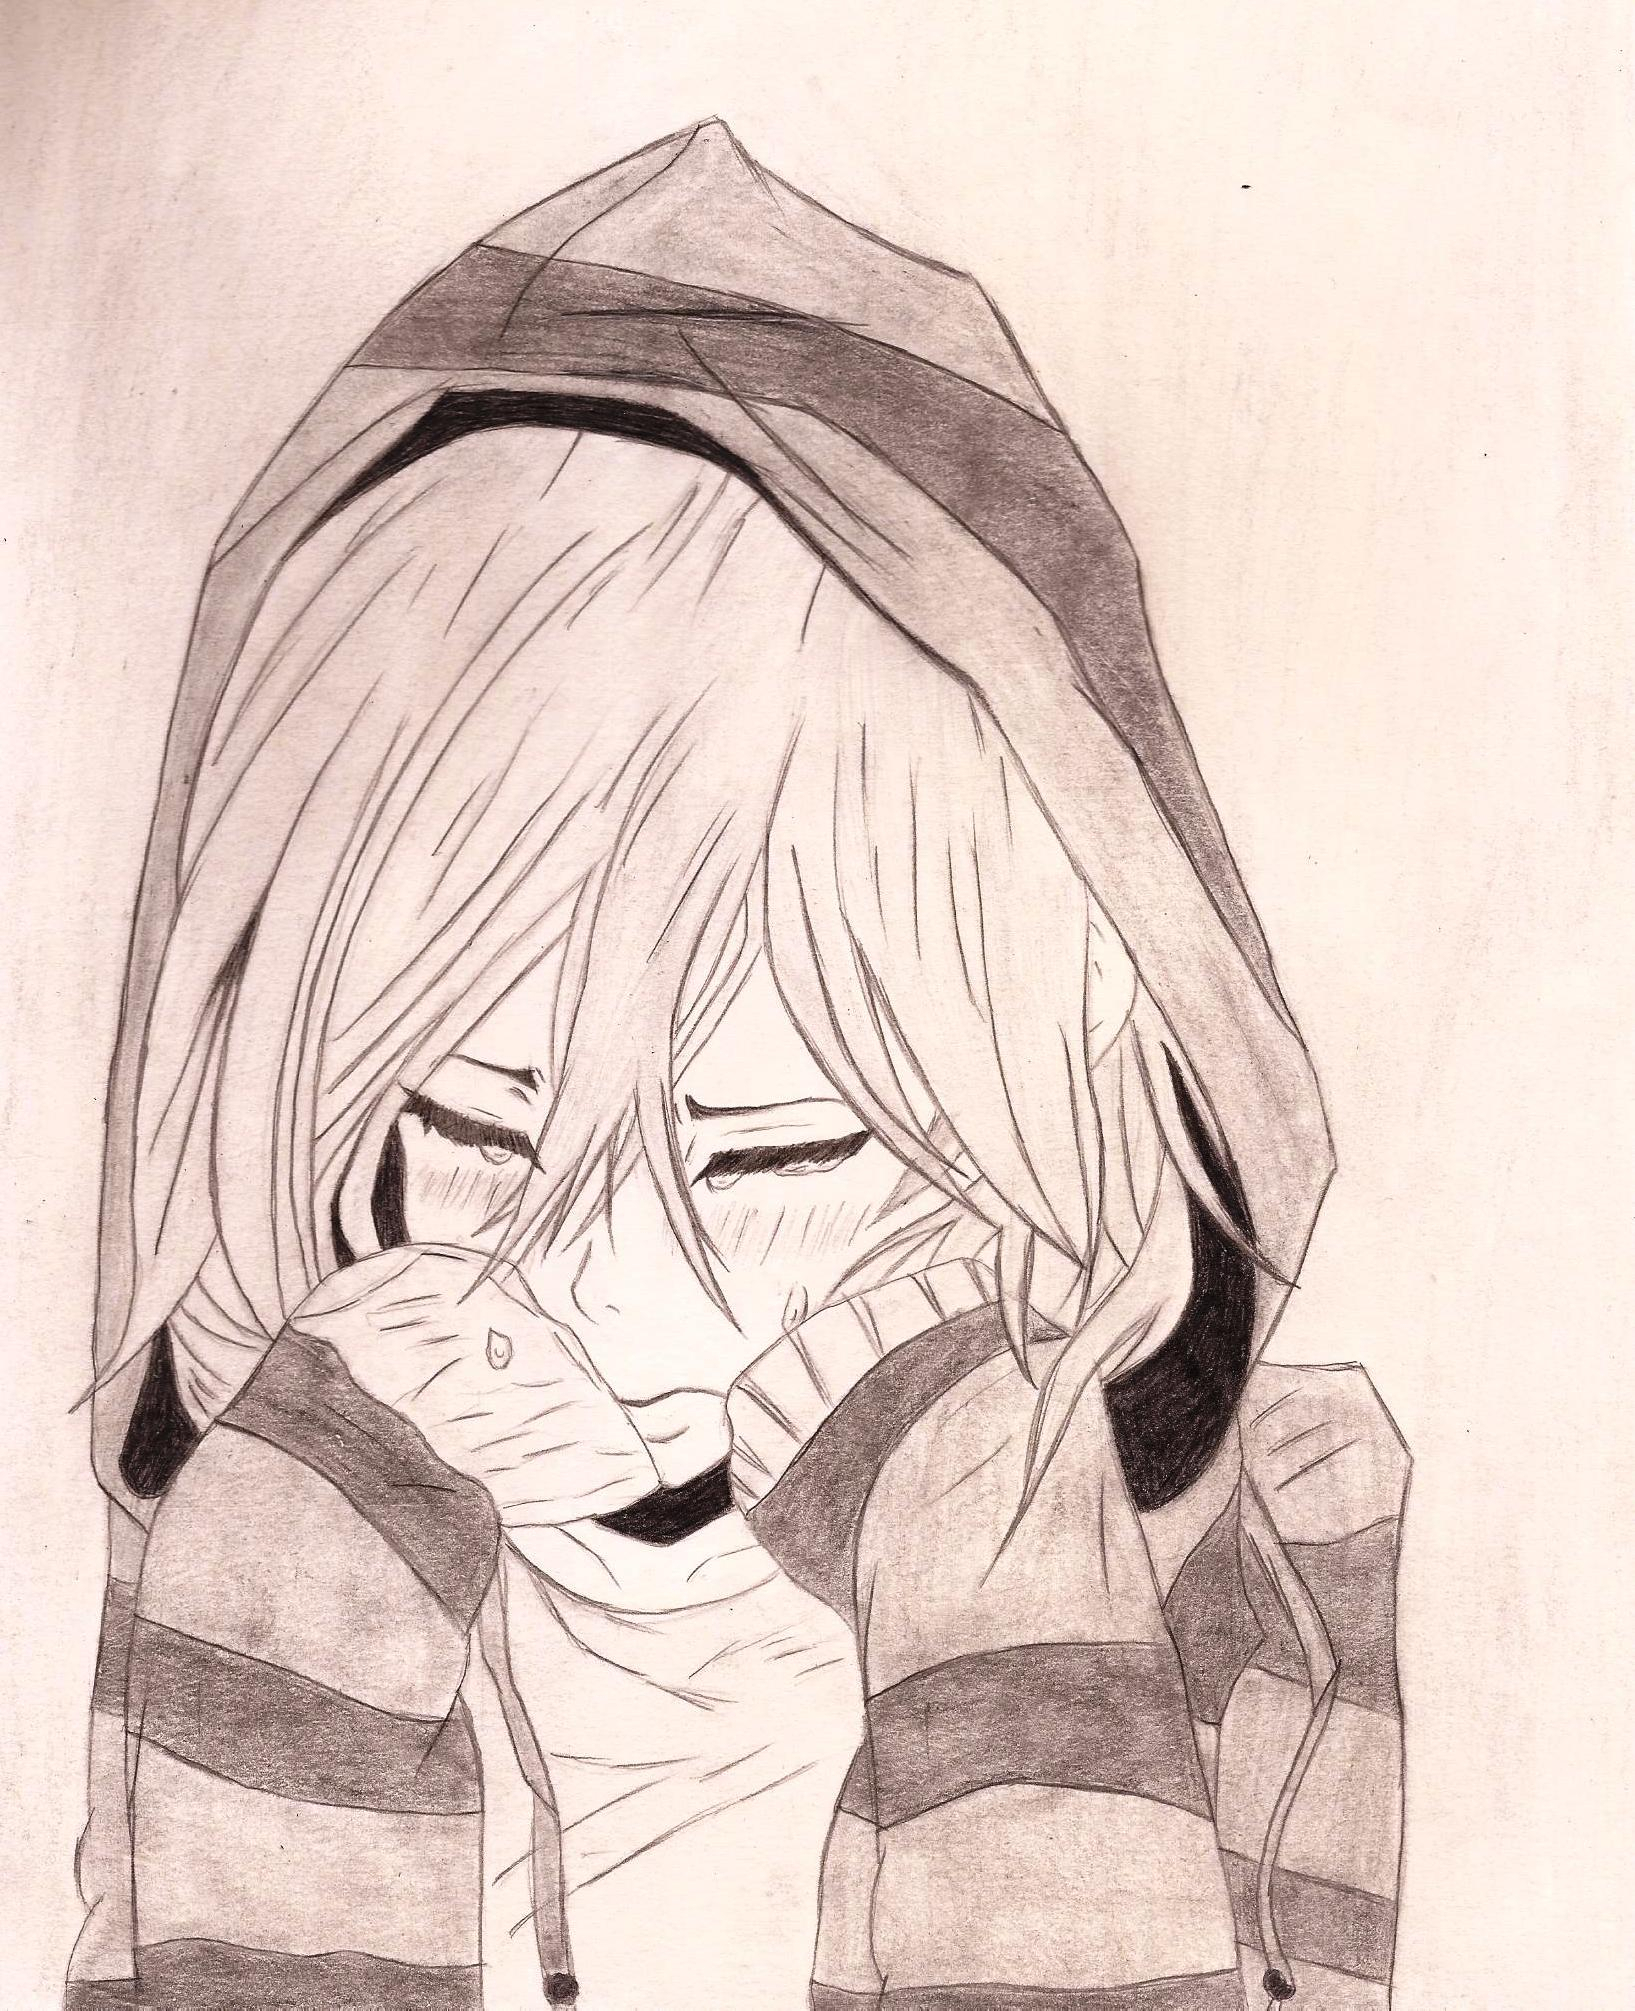 Sad Anime Girl Drawing At Getdrawings Com Free For